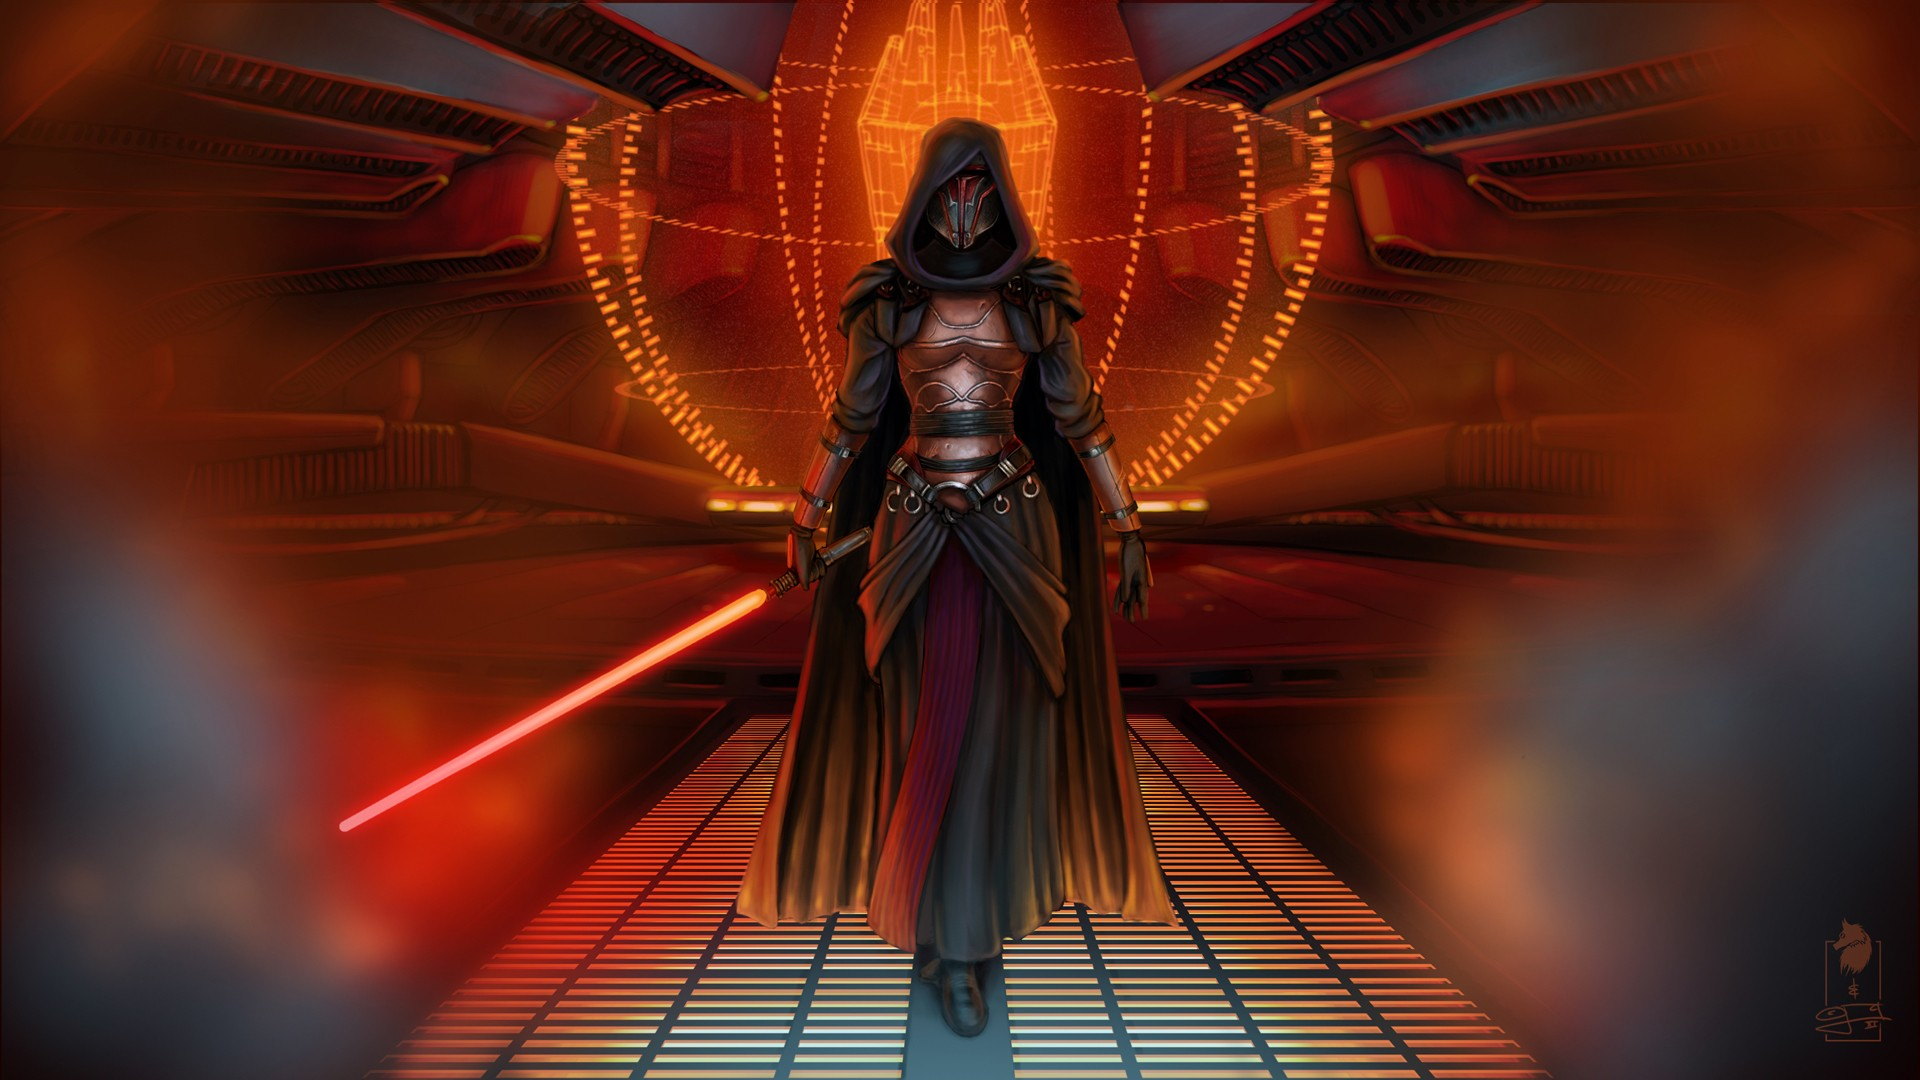 Star Wars The Old Republic Darth Revan Rule 63 Star Wars Jedi Sith Revan Star Wars Knights Of The Ol Wallpaper Resolution 1920x1080 Id 587072 Wallha Com